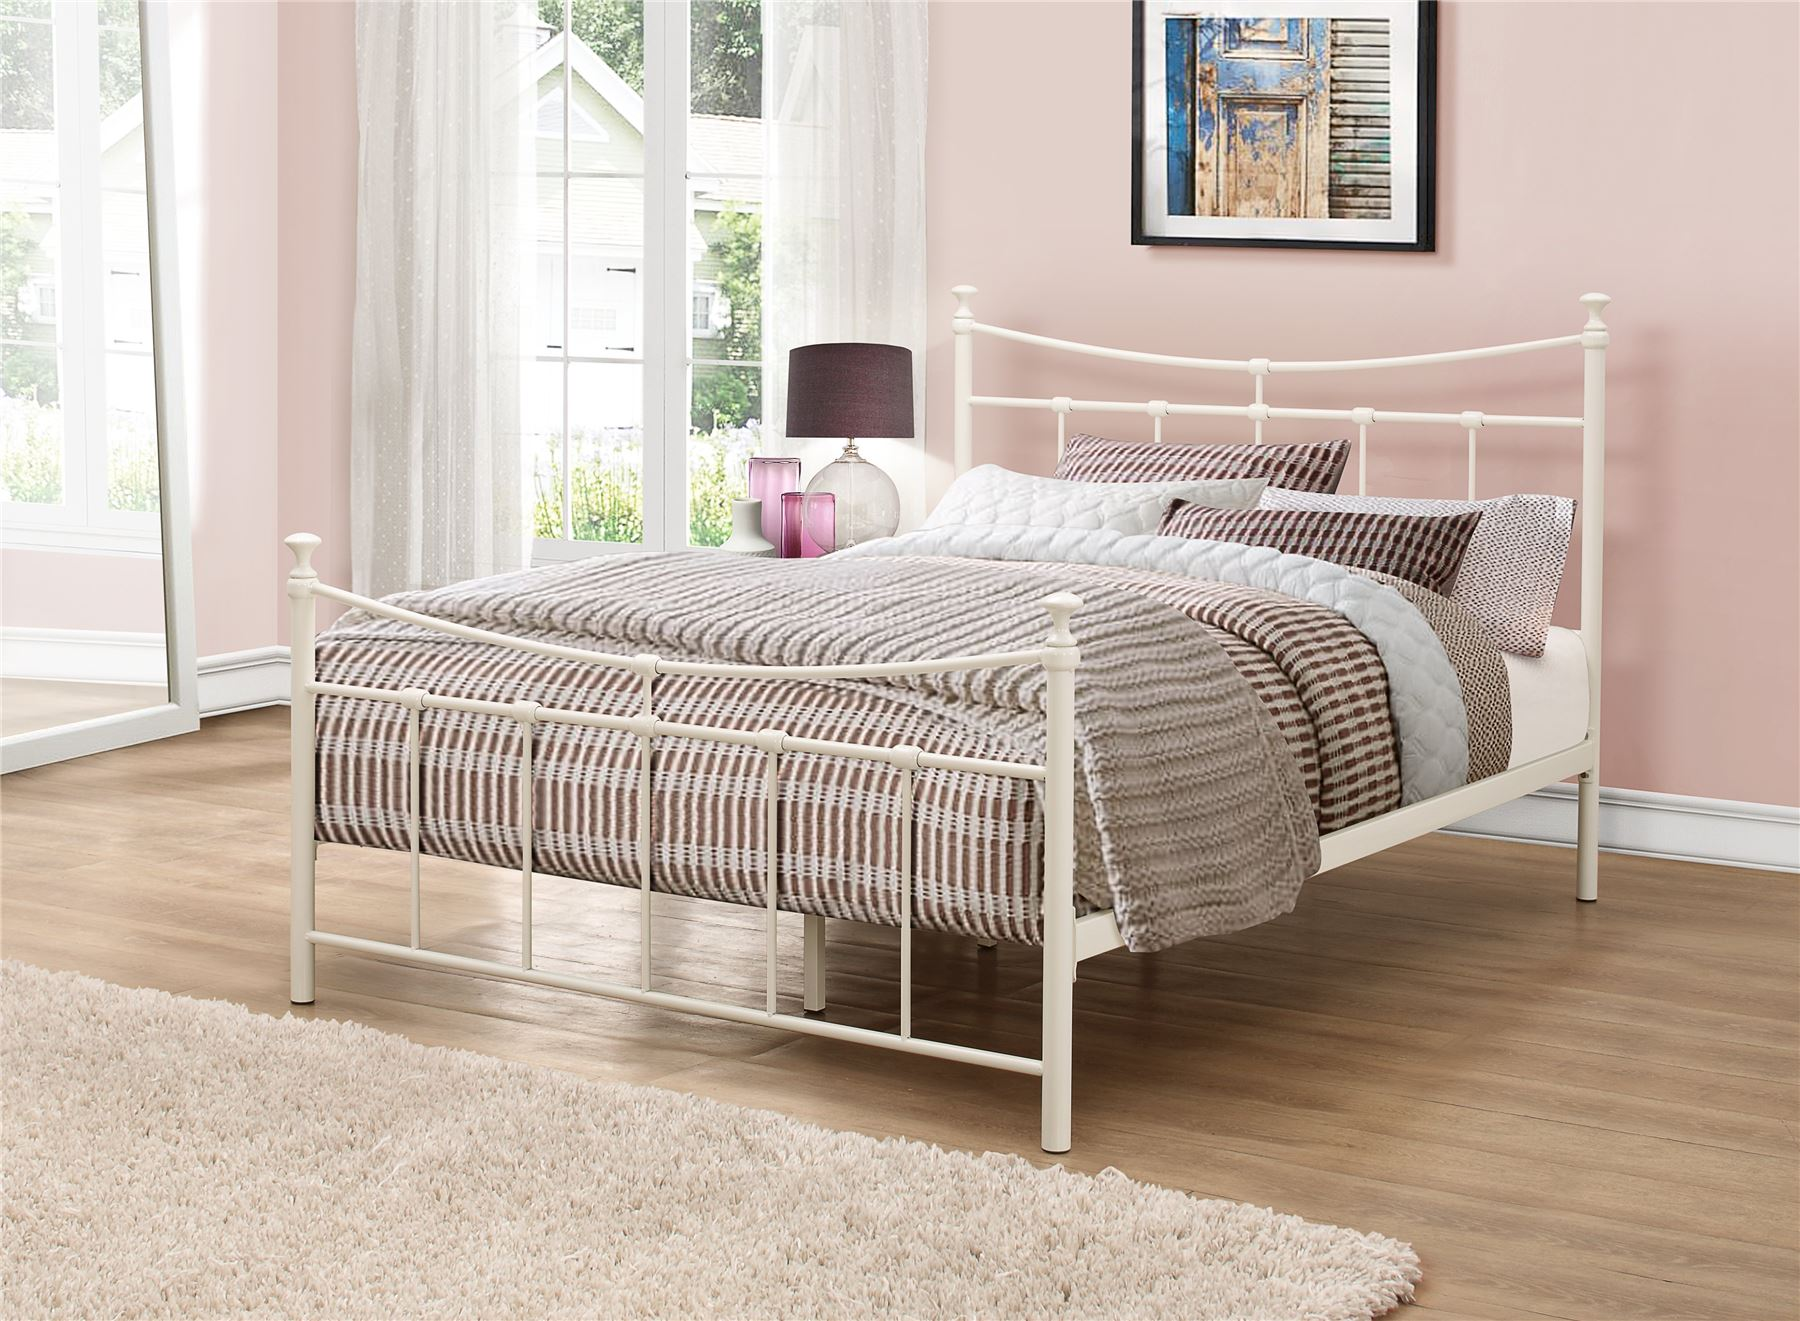 Emily 135cm 4FT6 Double Cream Ivory Metal Bed Frame Bedstead Sprung Base